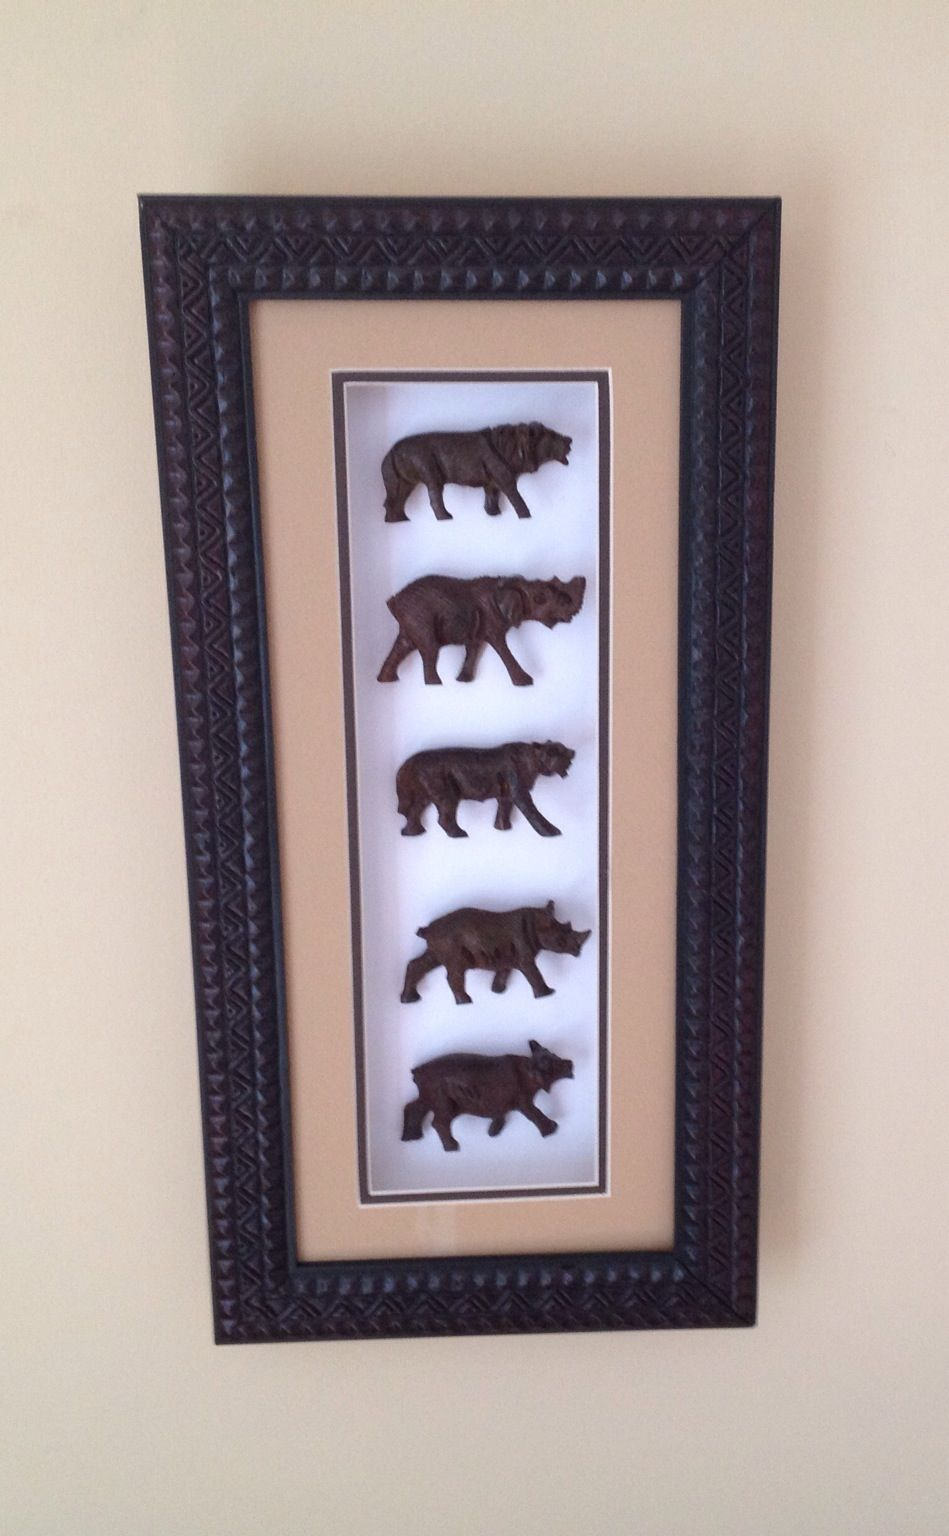 Wood Carvings in Shadow Box Frame - Big 5 Animals: Rustic, Handmade ...